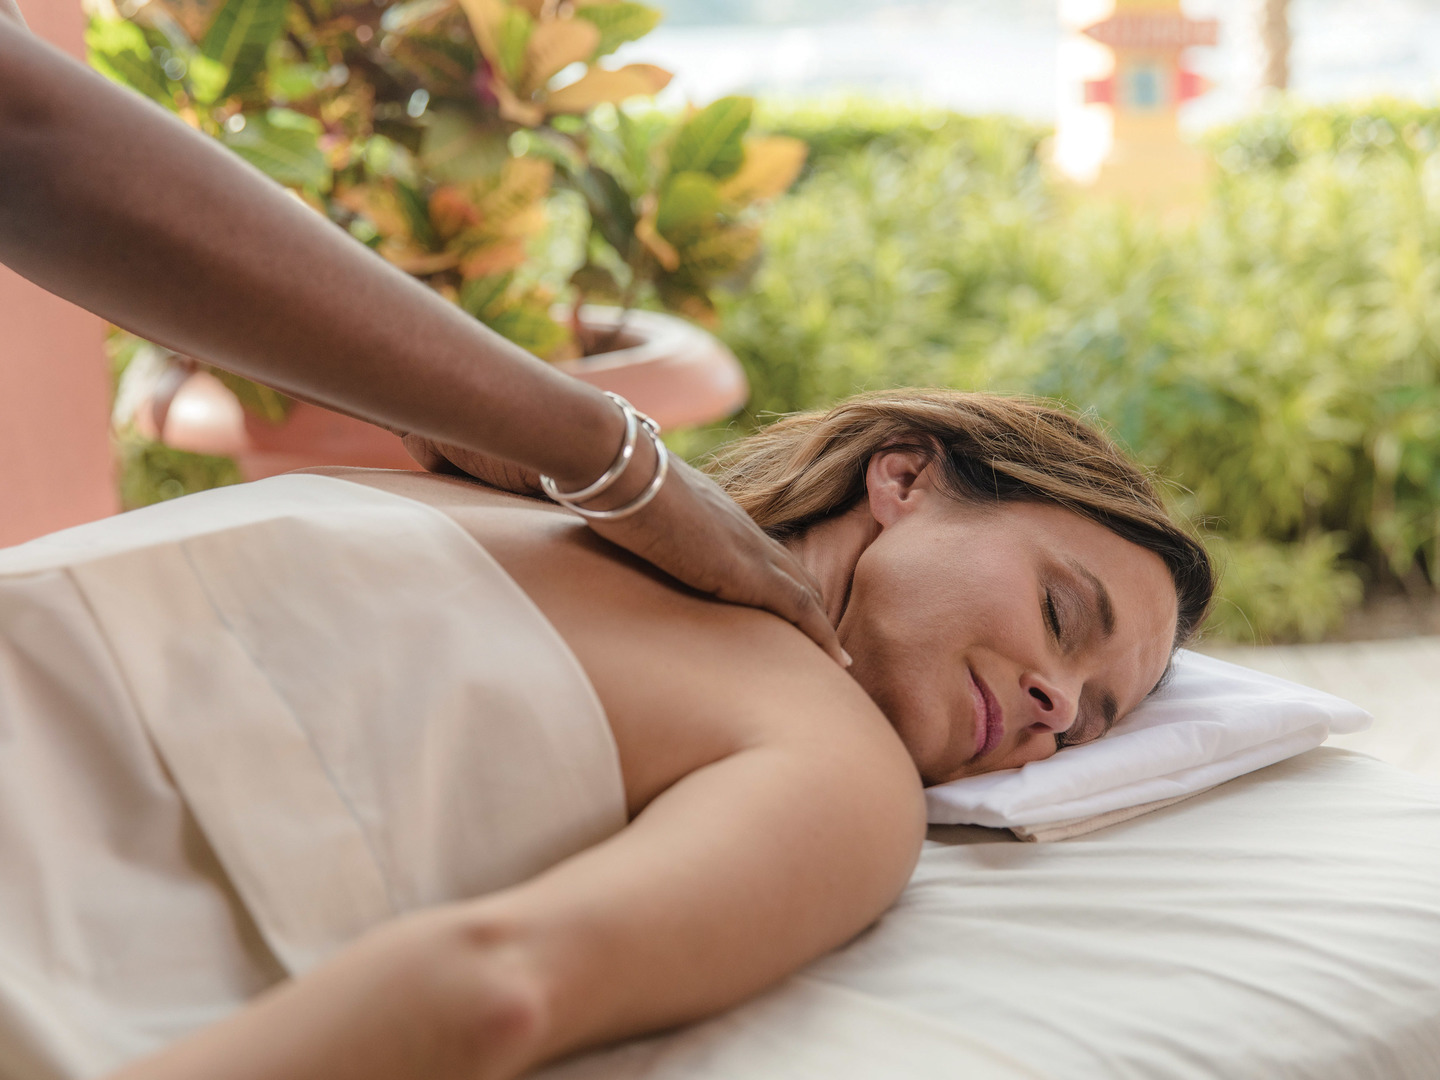 Marriott's Frenchman's Cove Spa. Marriott's Frenchman's Cove is located in St. Thomas, US Virgin Islands United States.